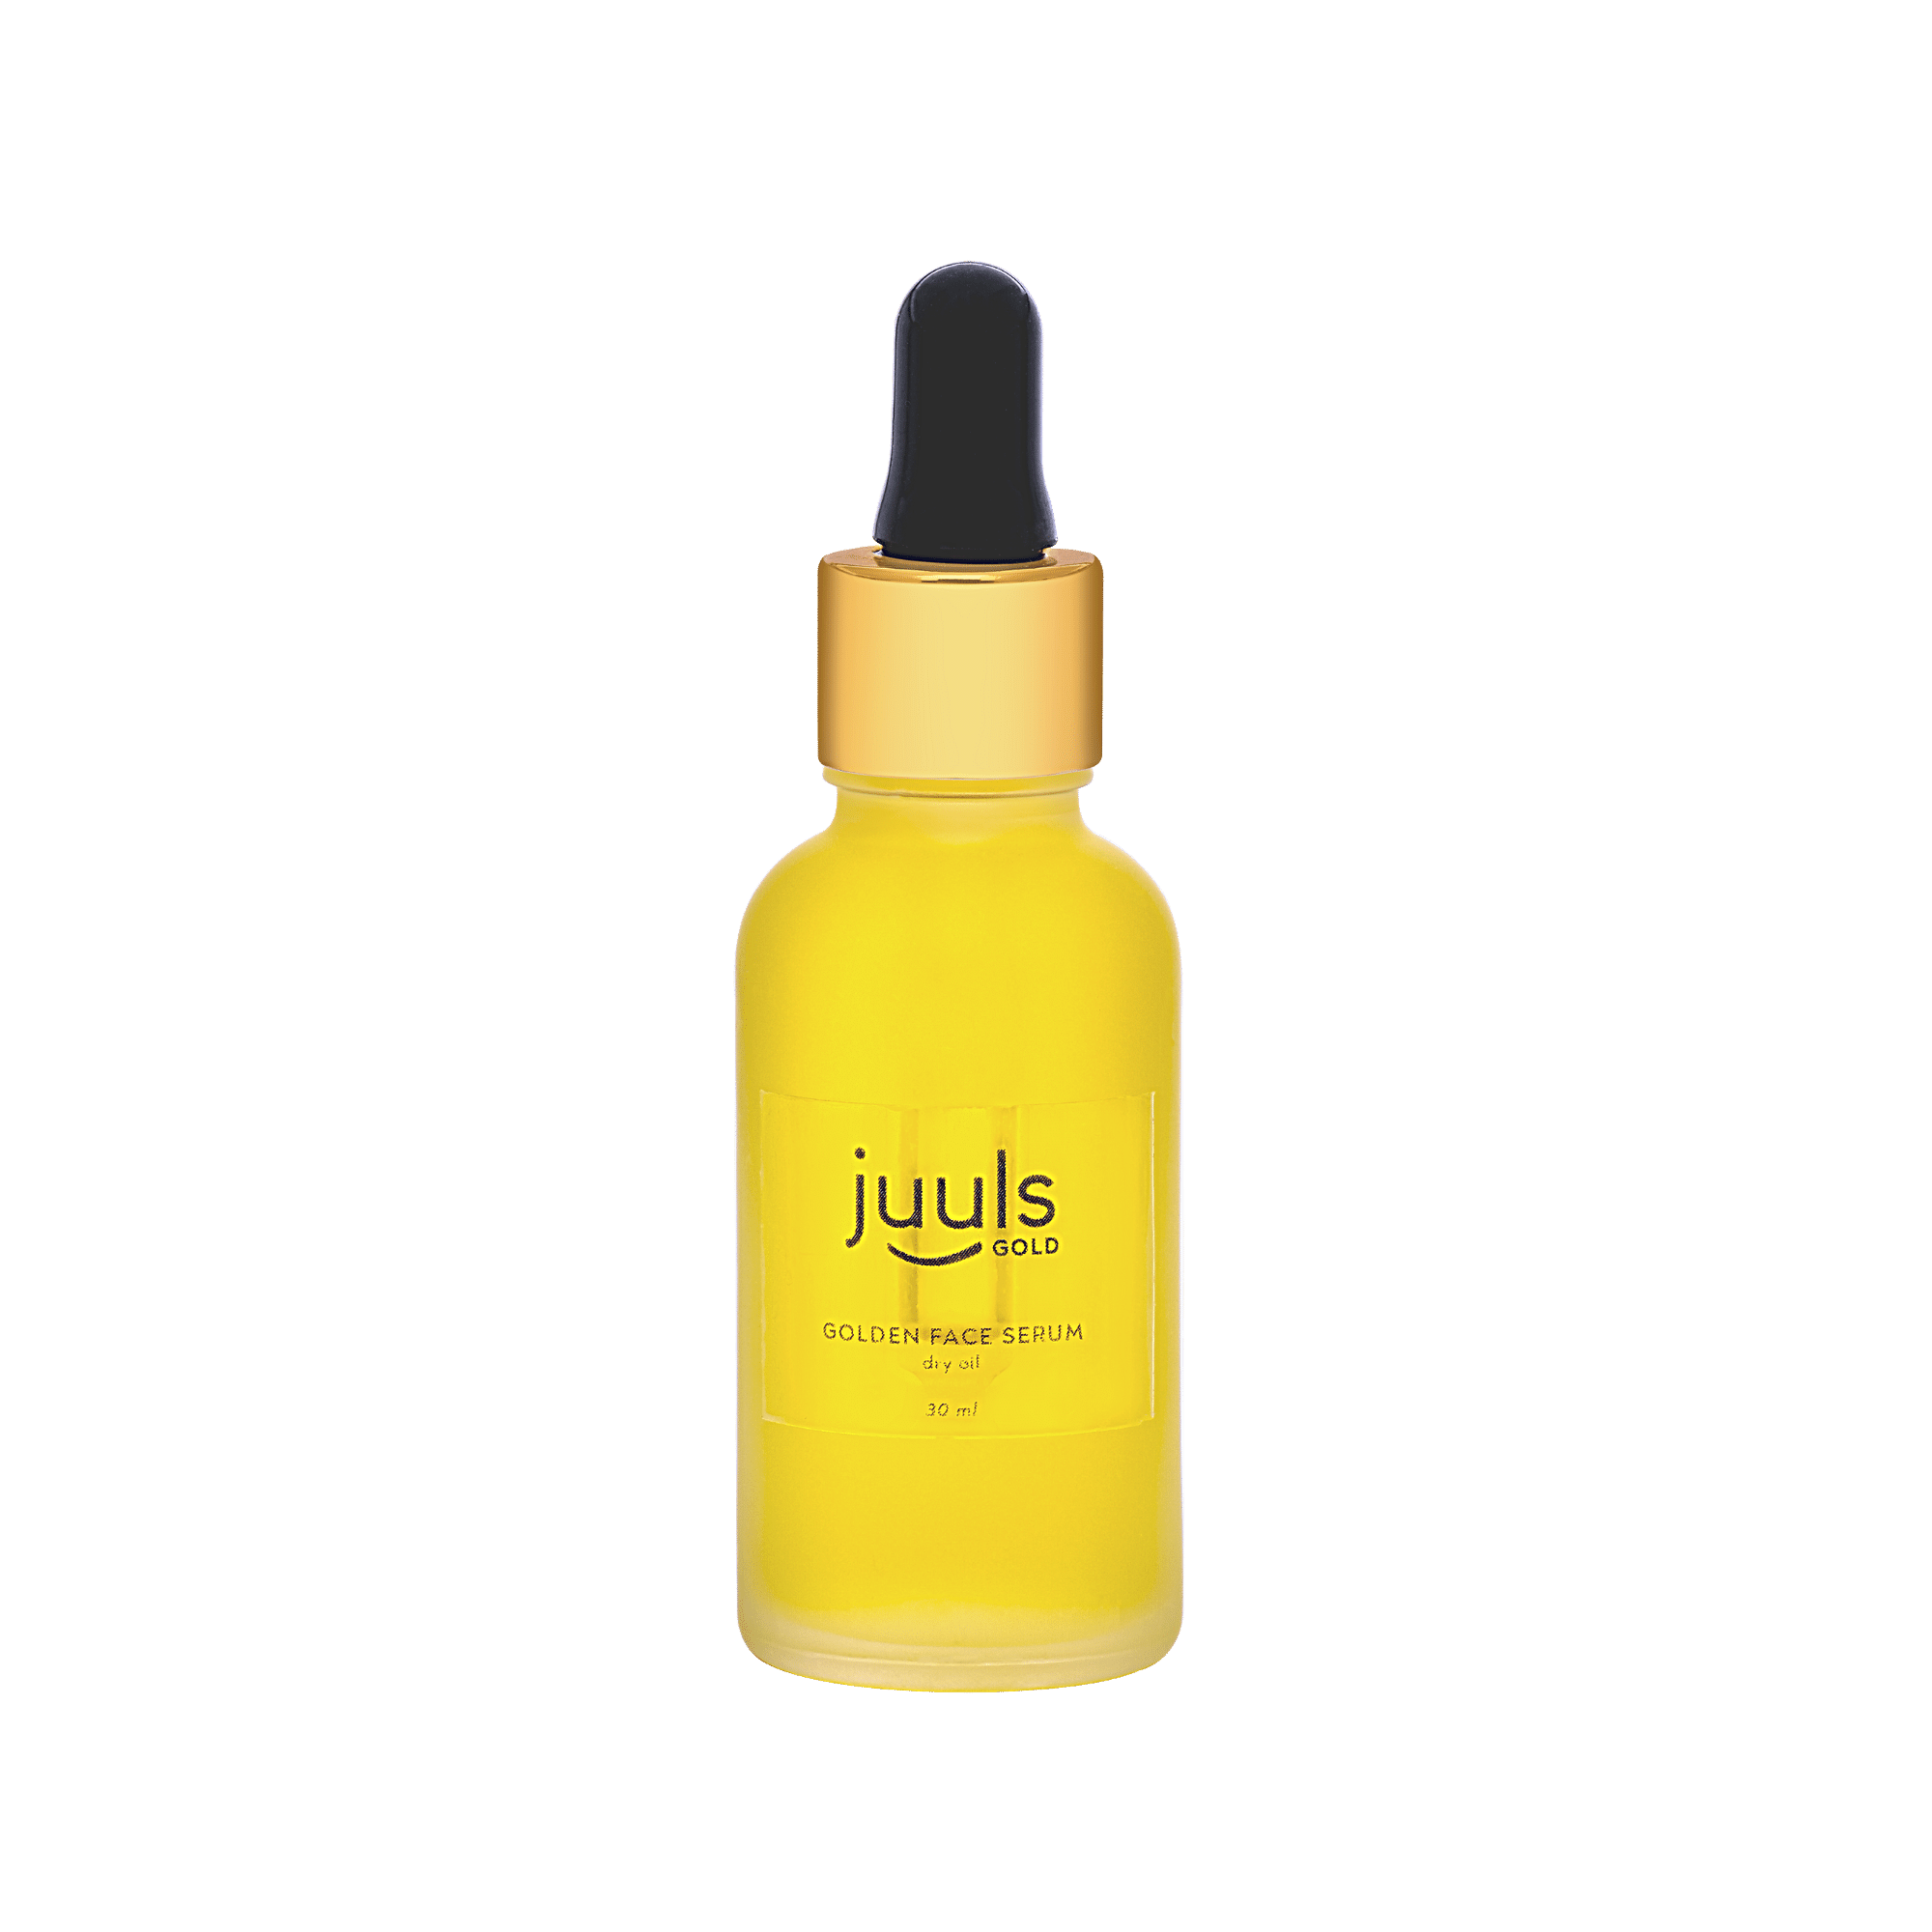 Golden Face Serum